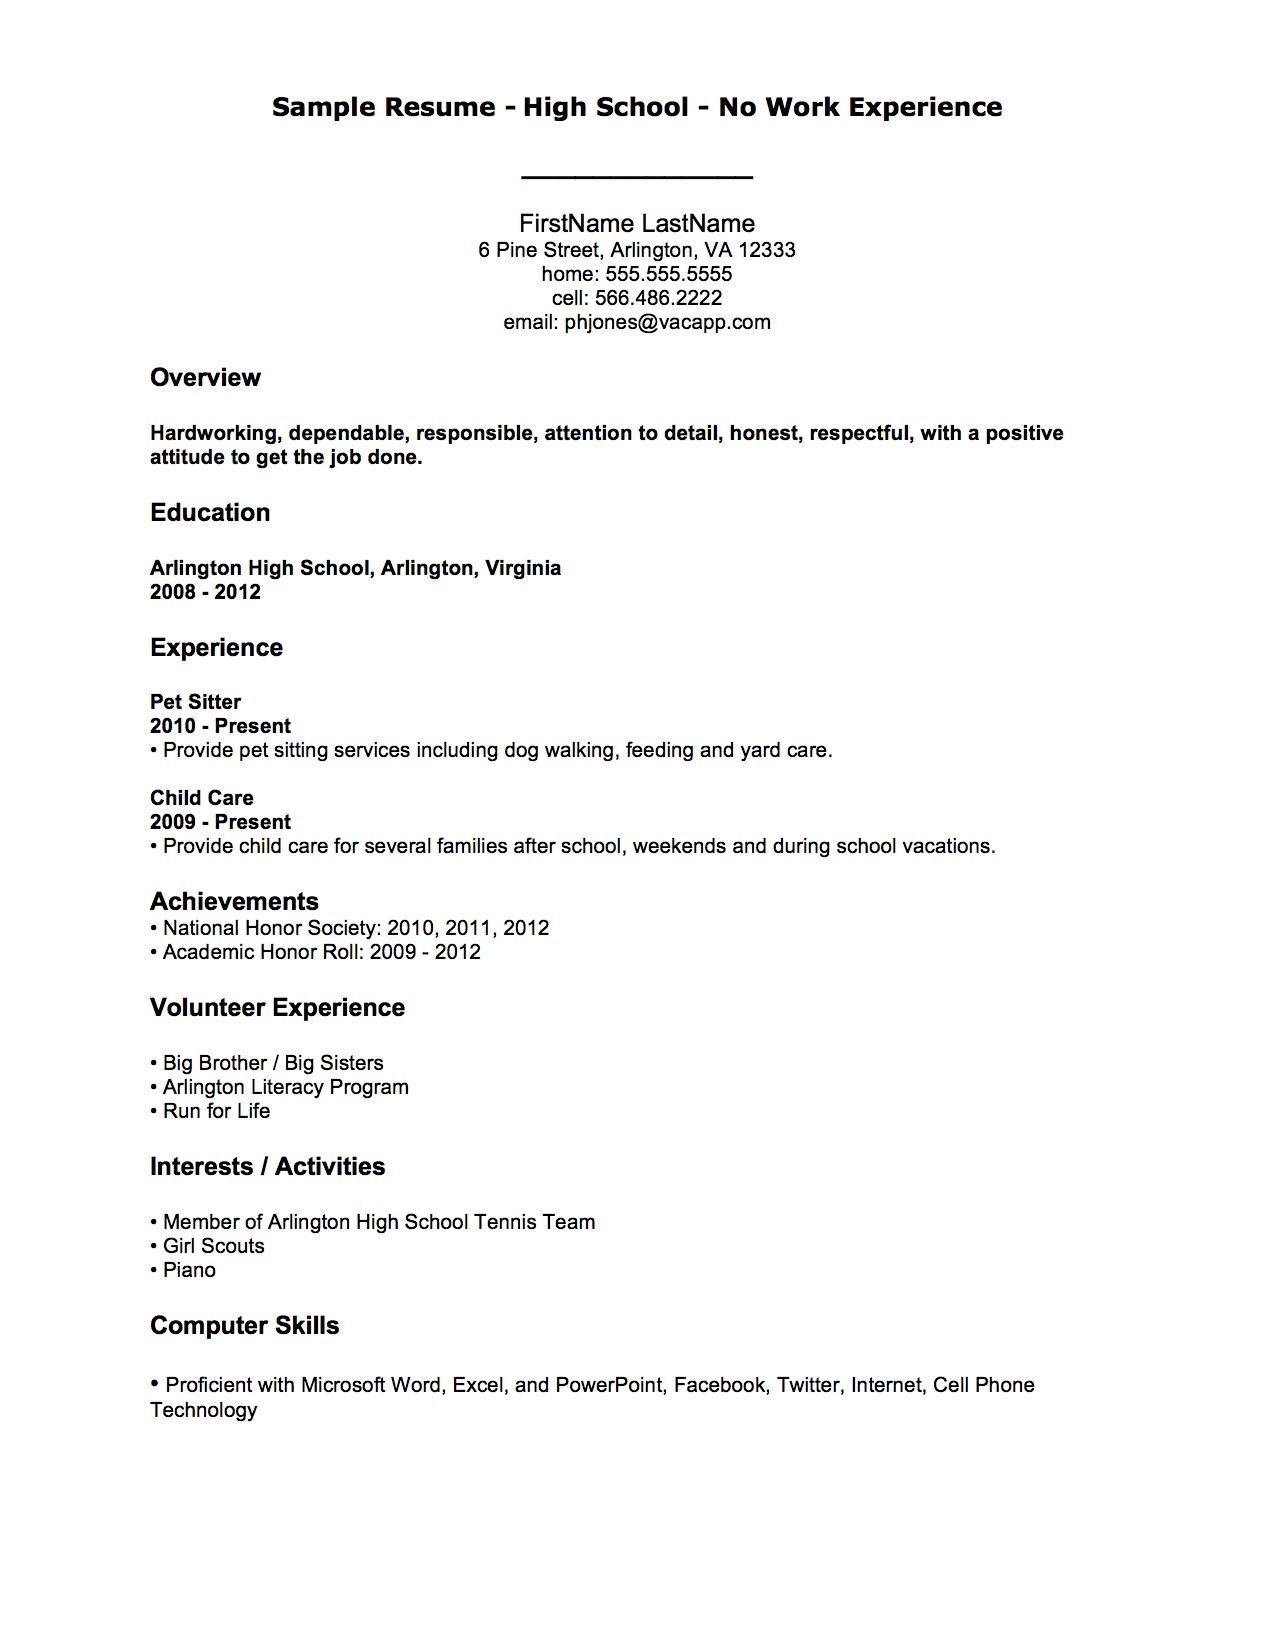 Resume Examples  What Does A College Resume Look Like